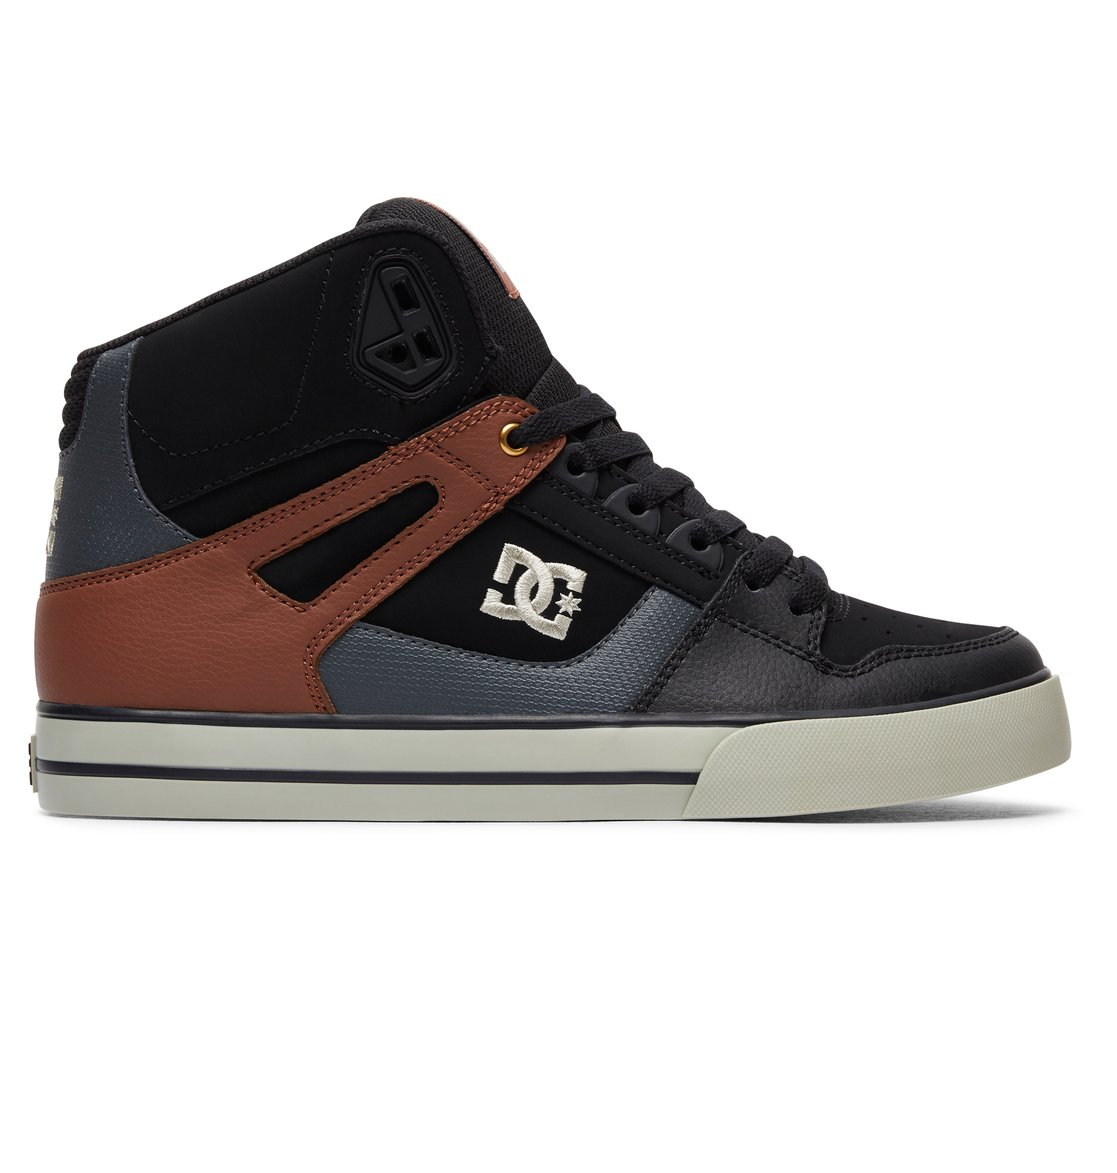 Red Dc High Top Shoes